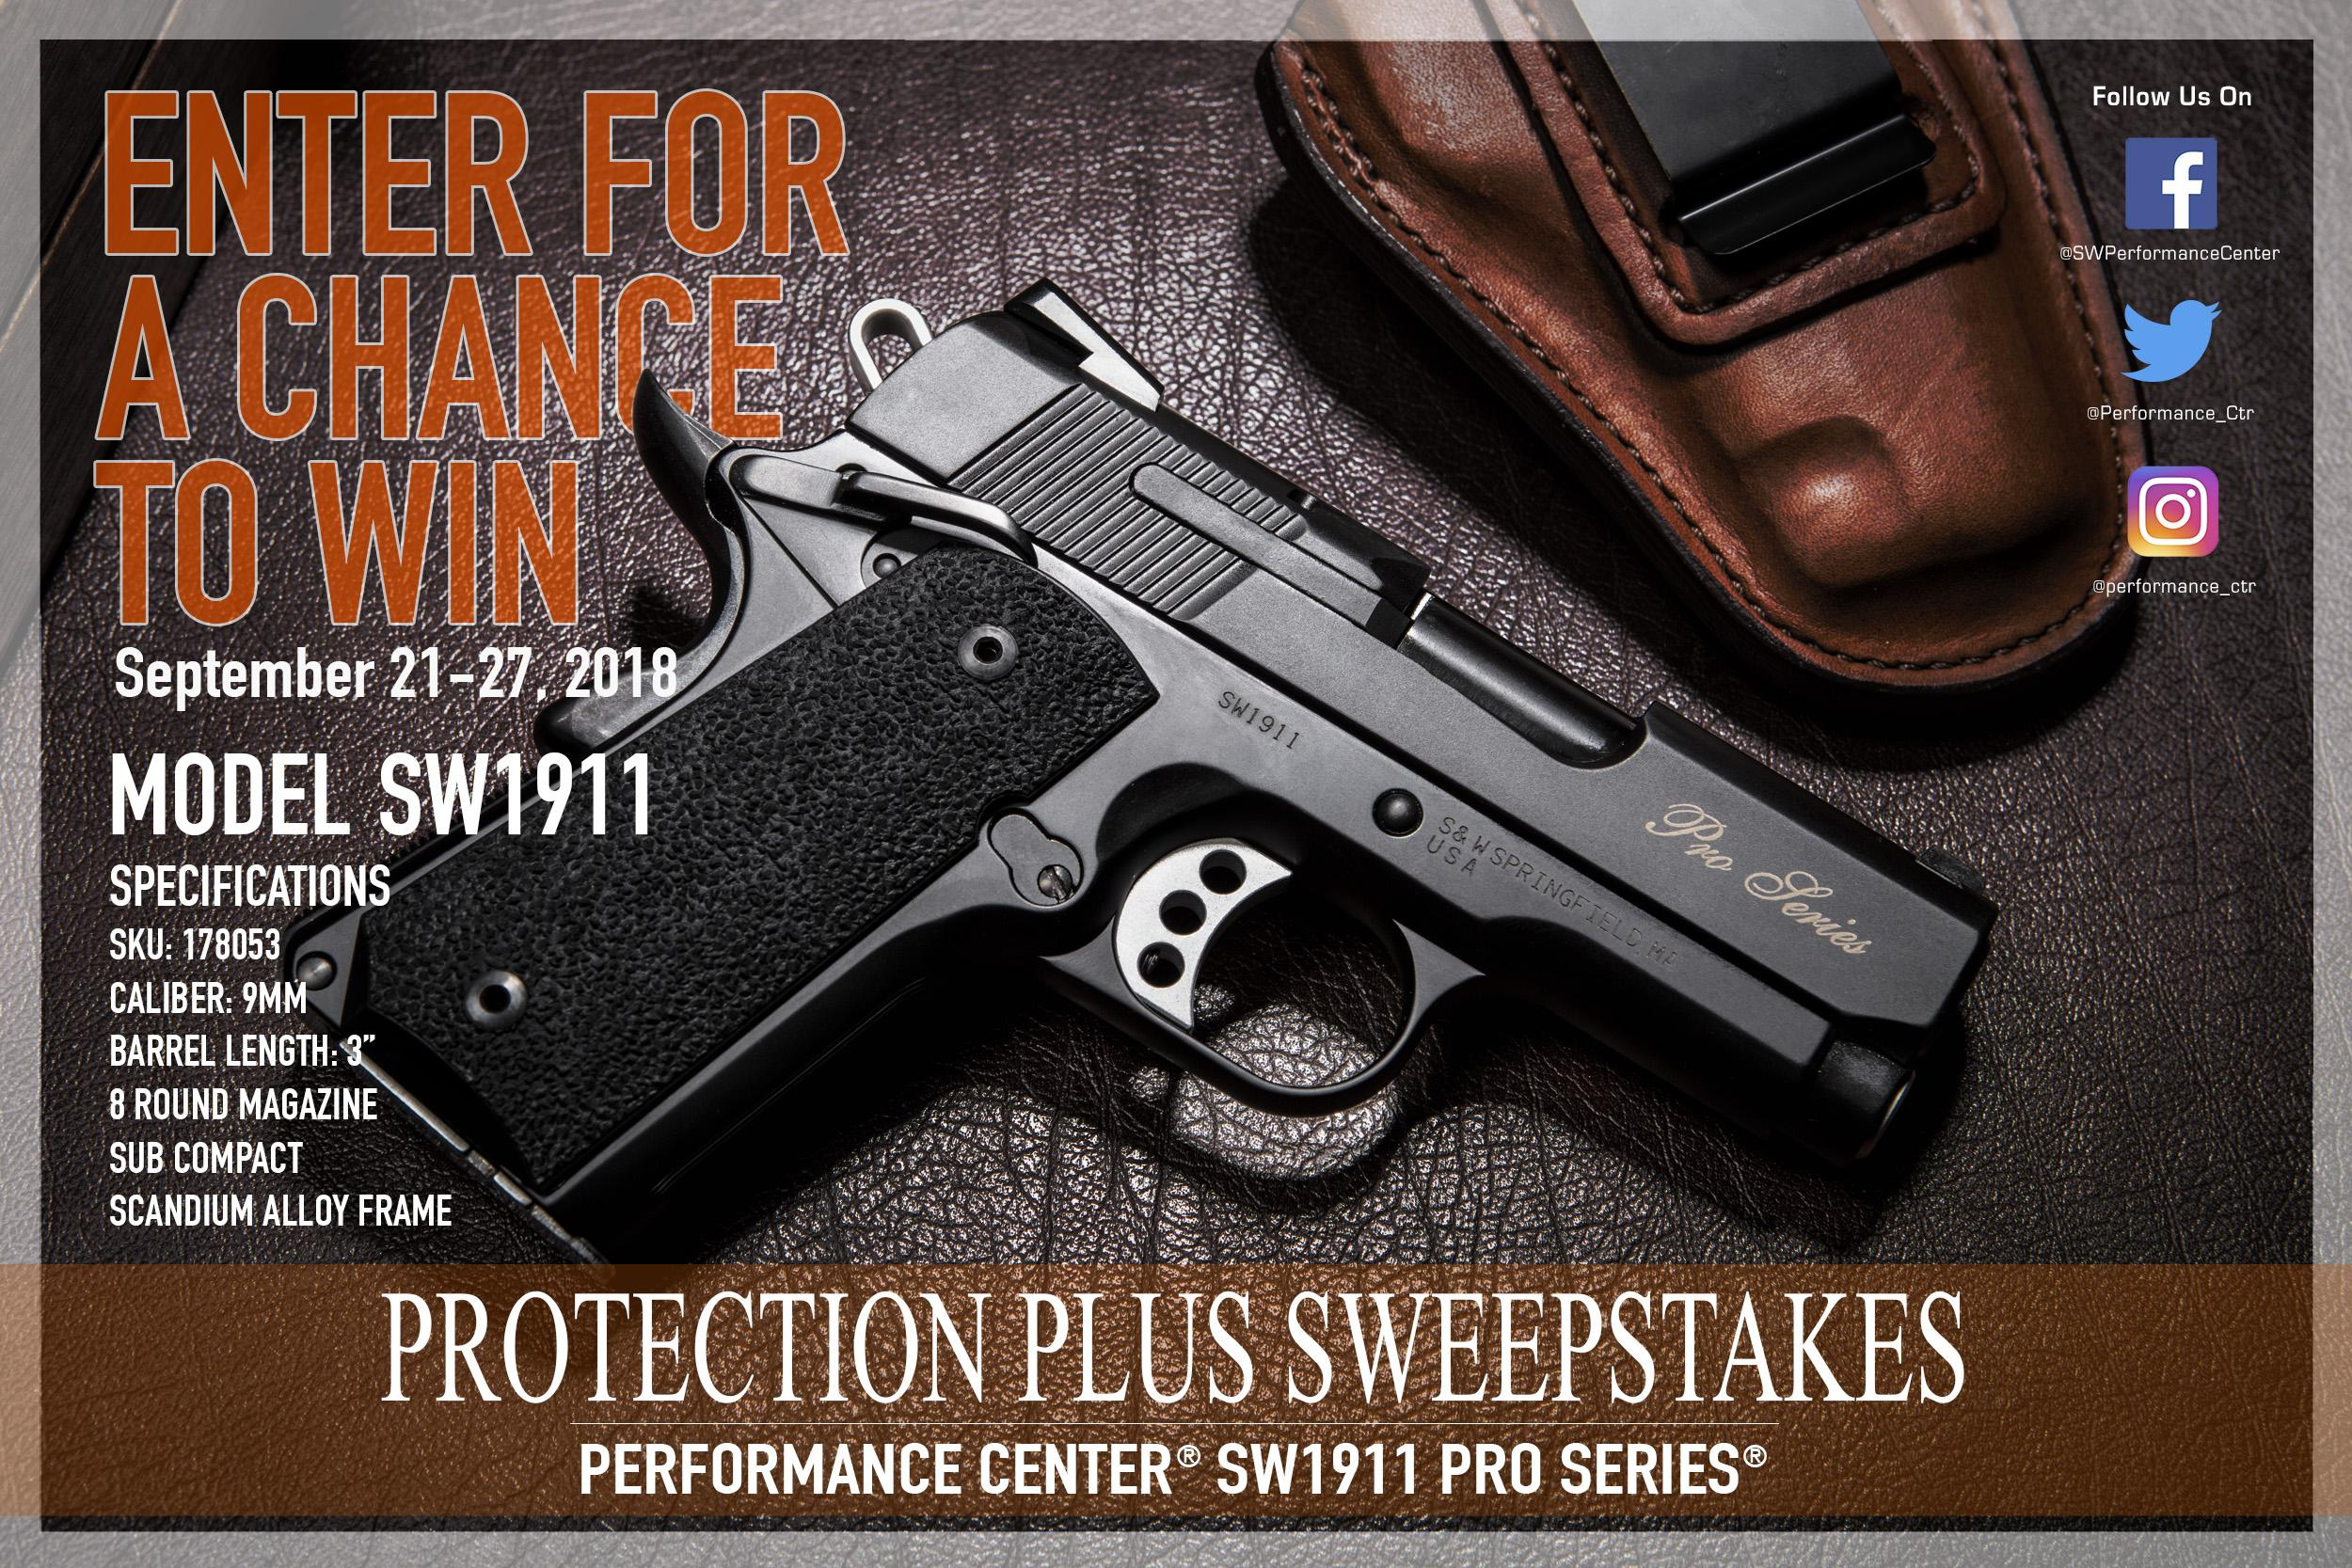 Gun giveaway sweepstakes 2018 august